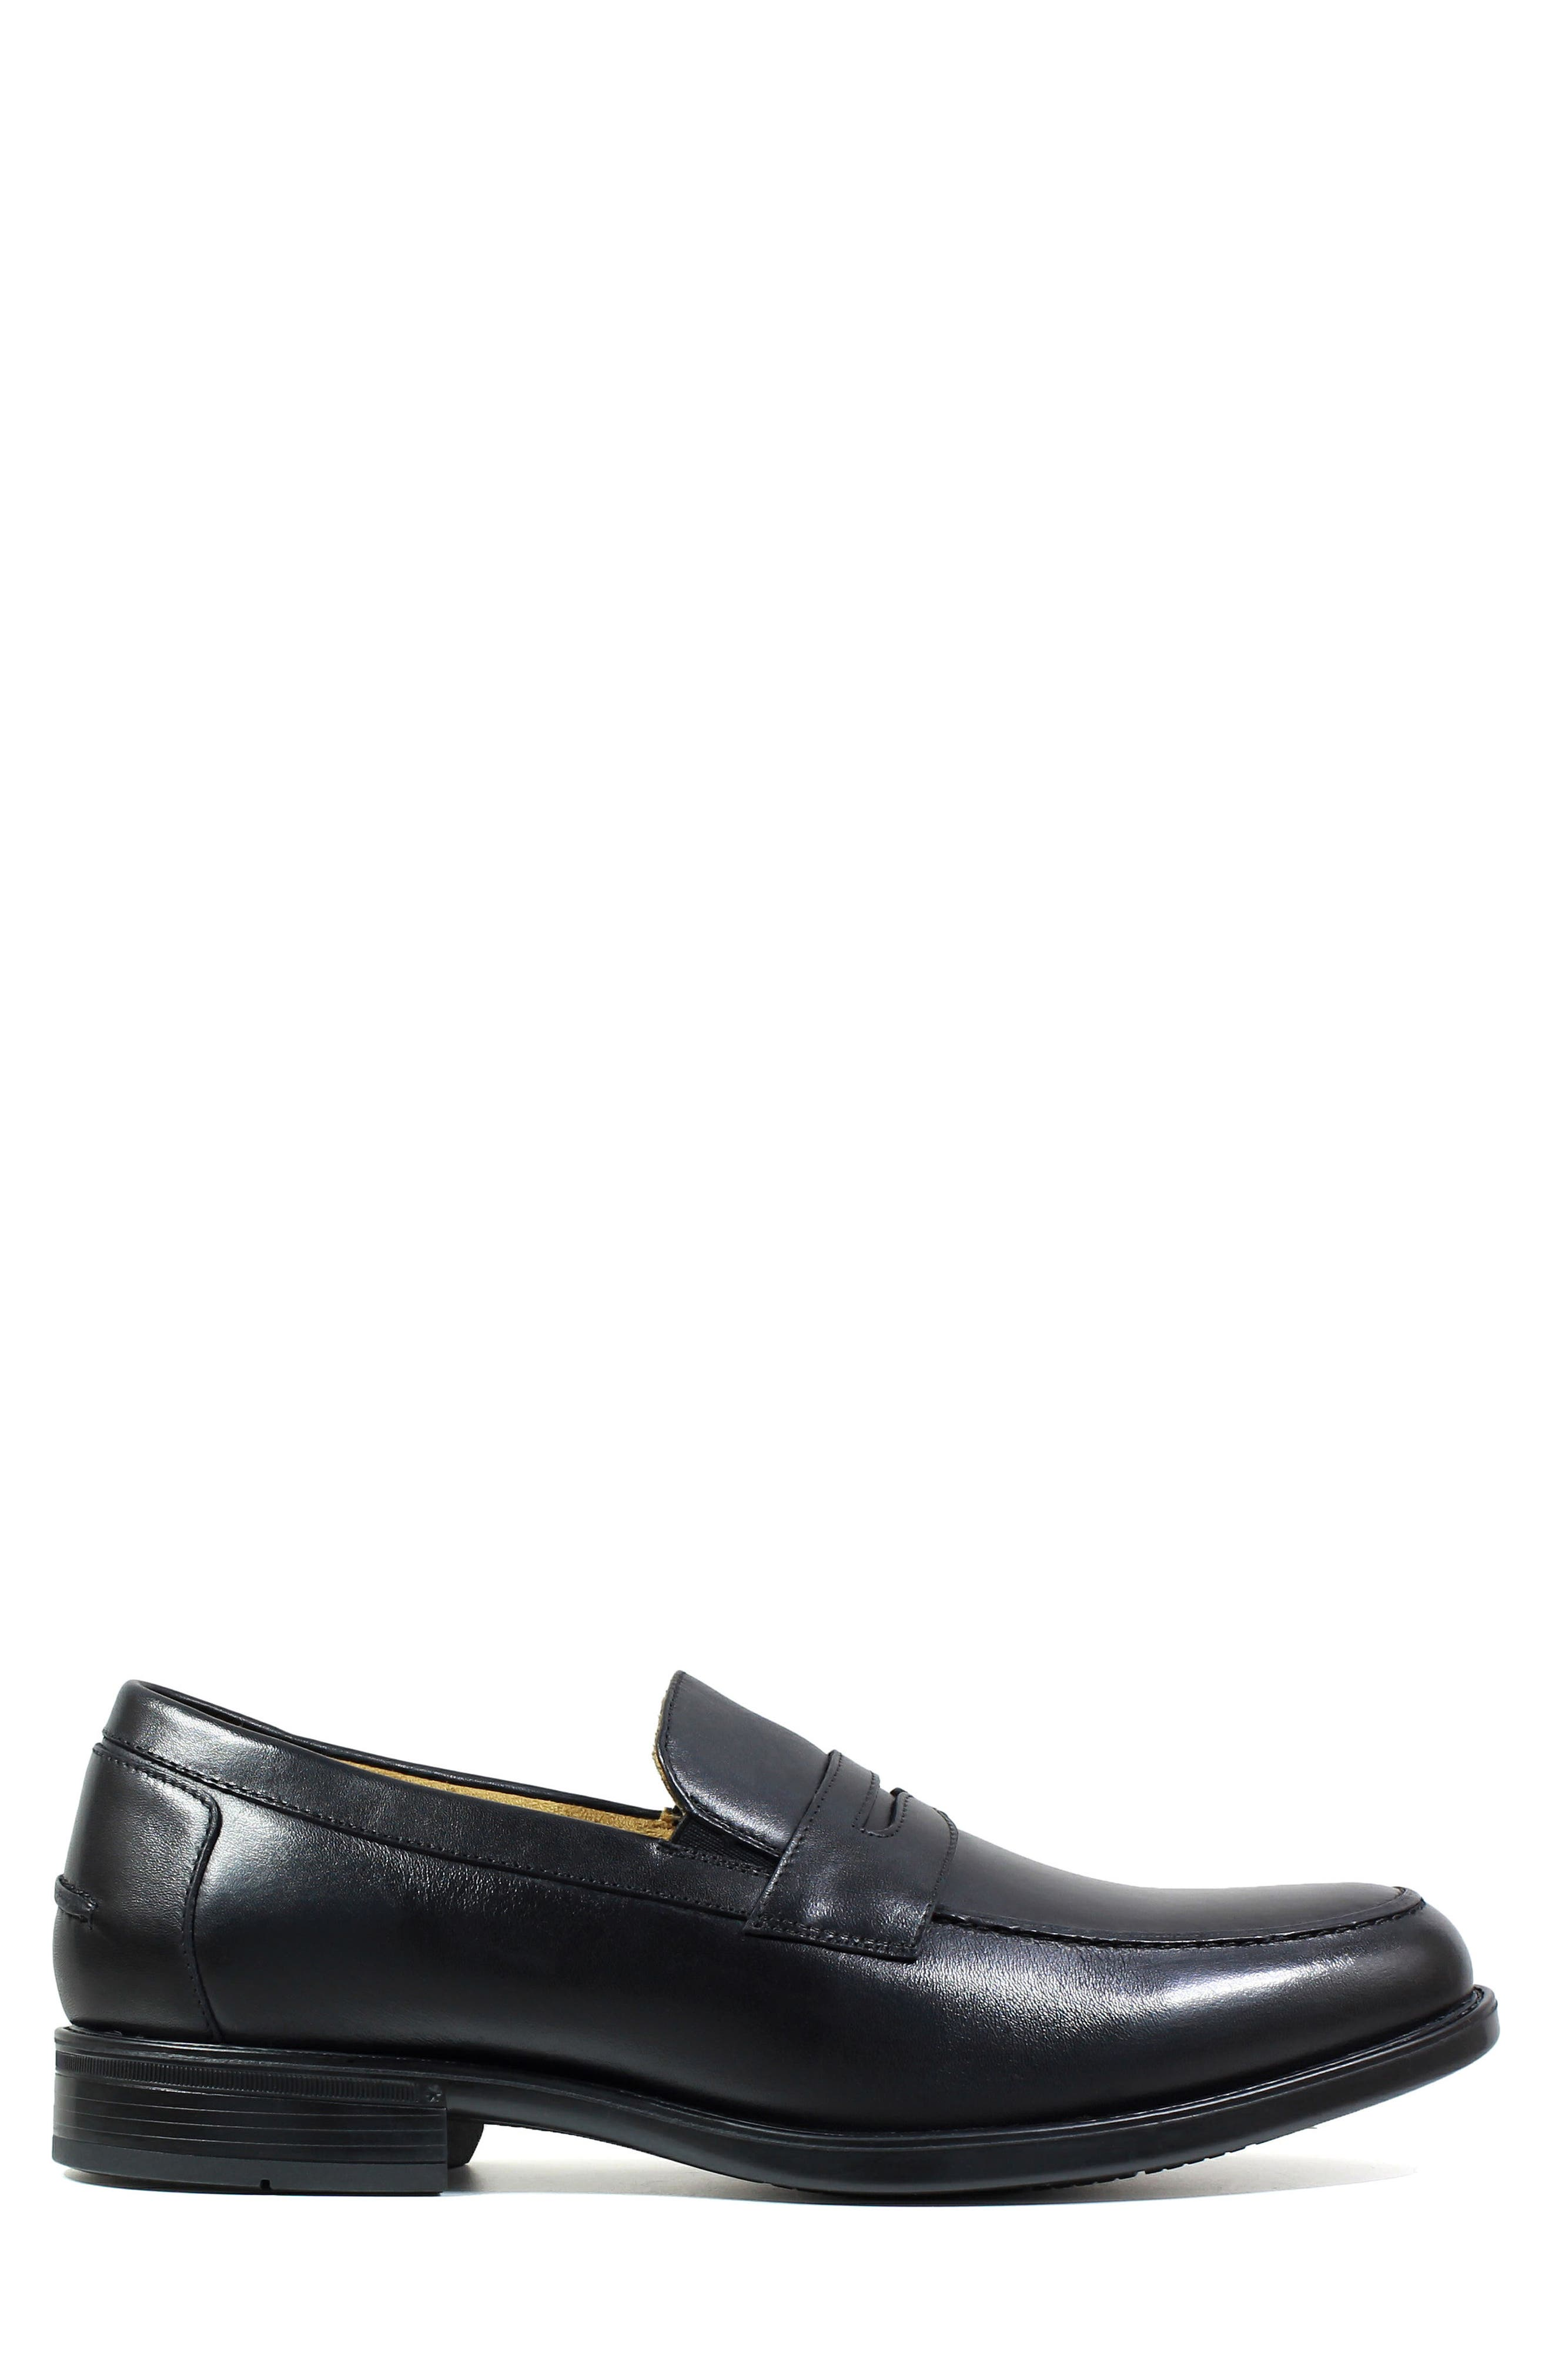 Midtown Penny Loafer,                             Alternate thumbnail 3, color,                             001